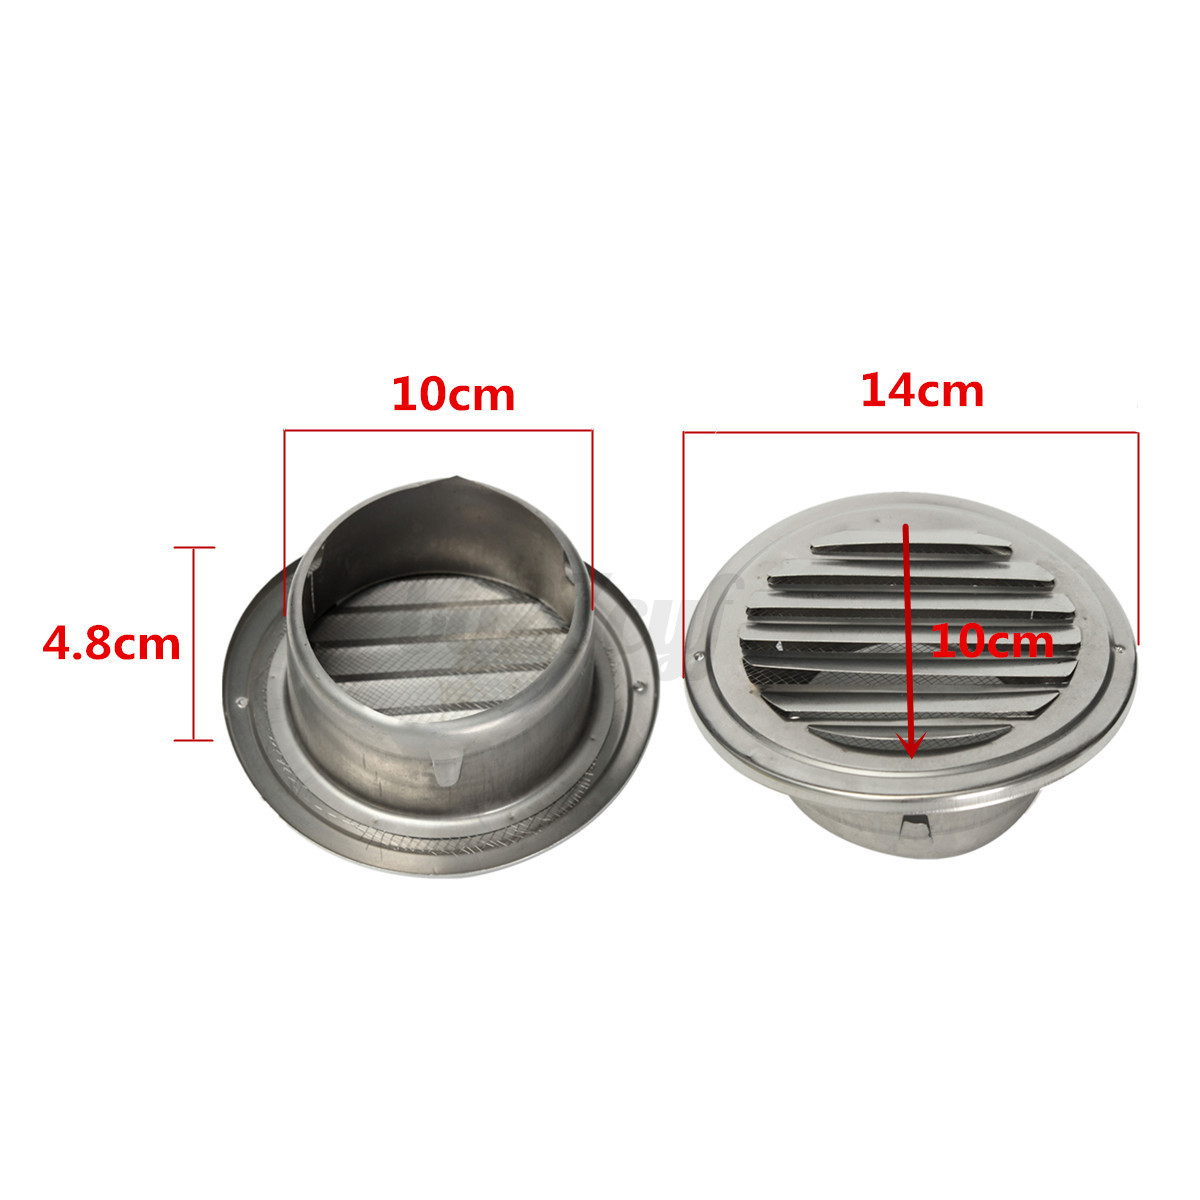 stainless steel silver circular air vent grille cover wall ventilation grilles ebay. Black Bedroom Furniture Sets. Home Design Ideas